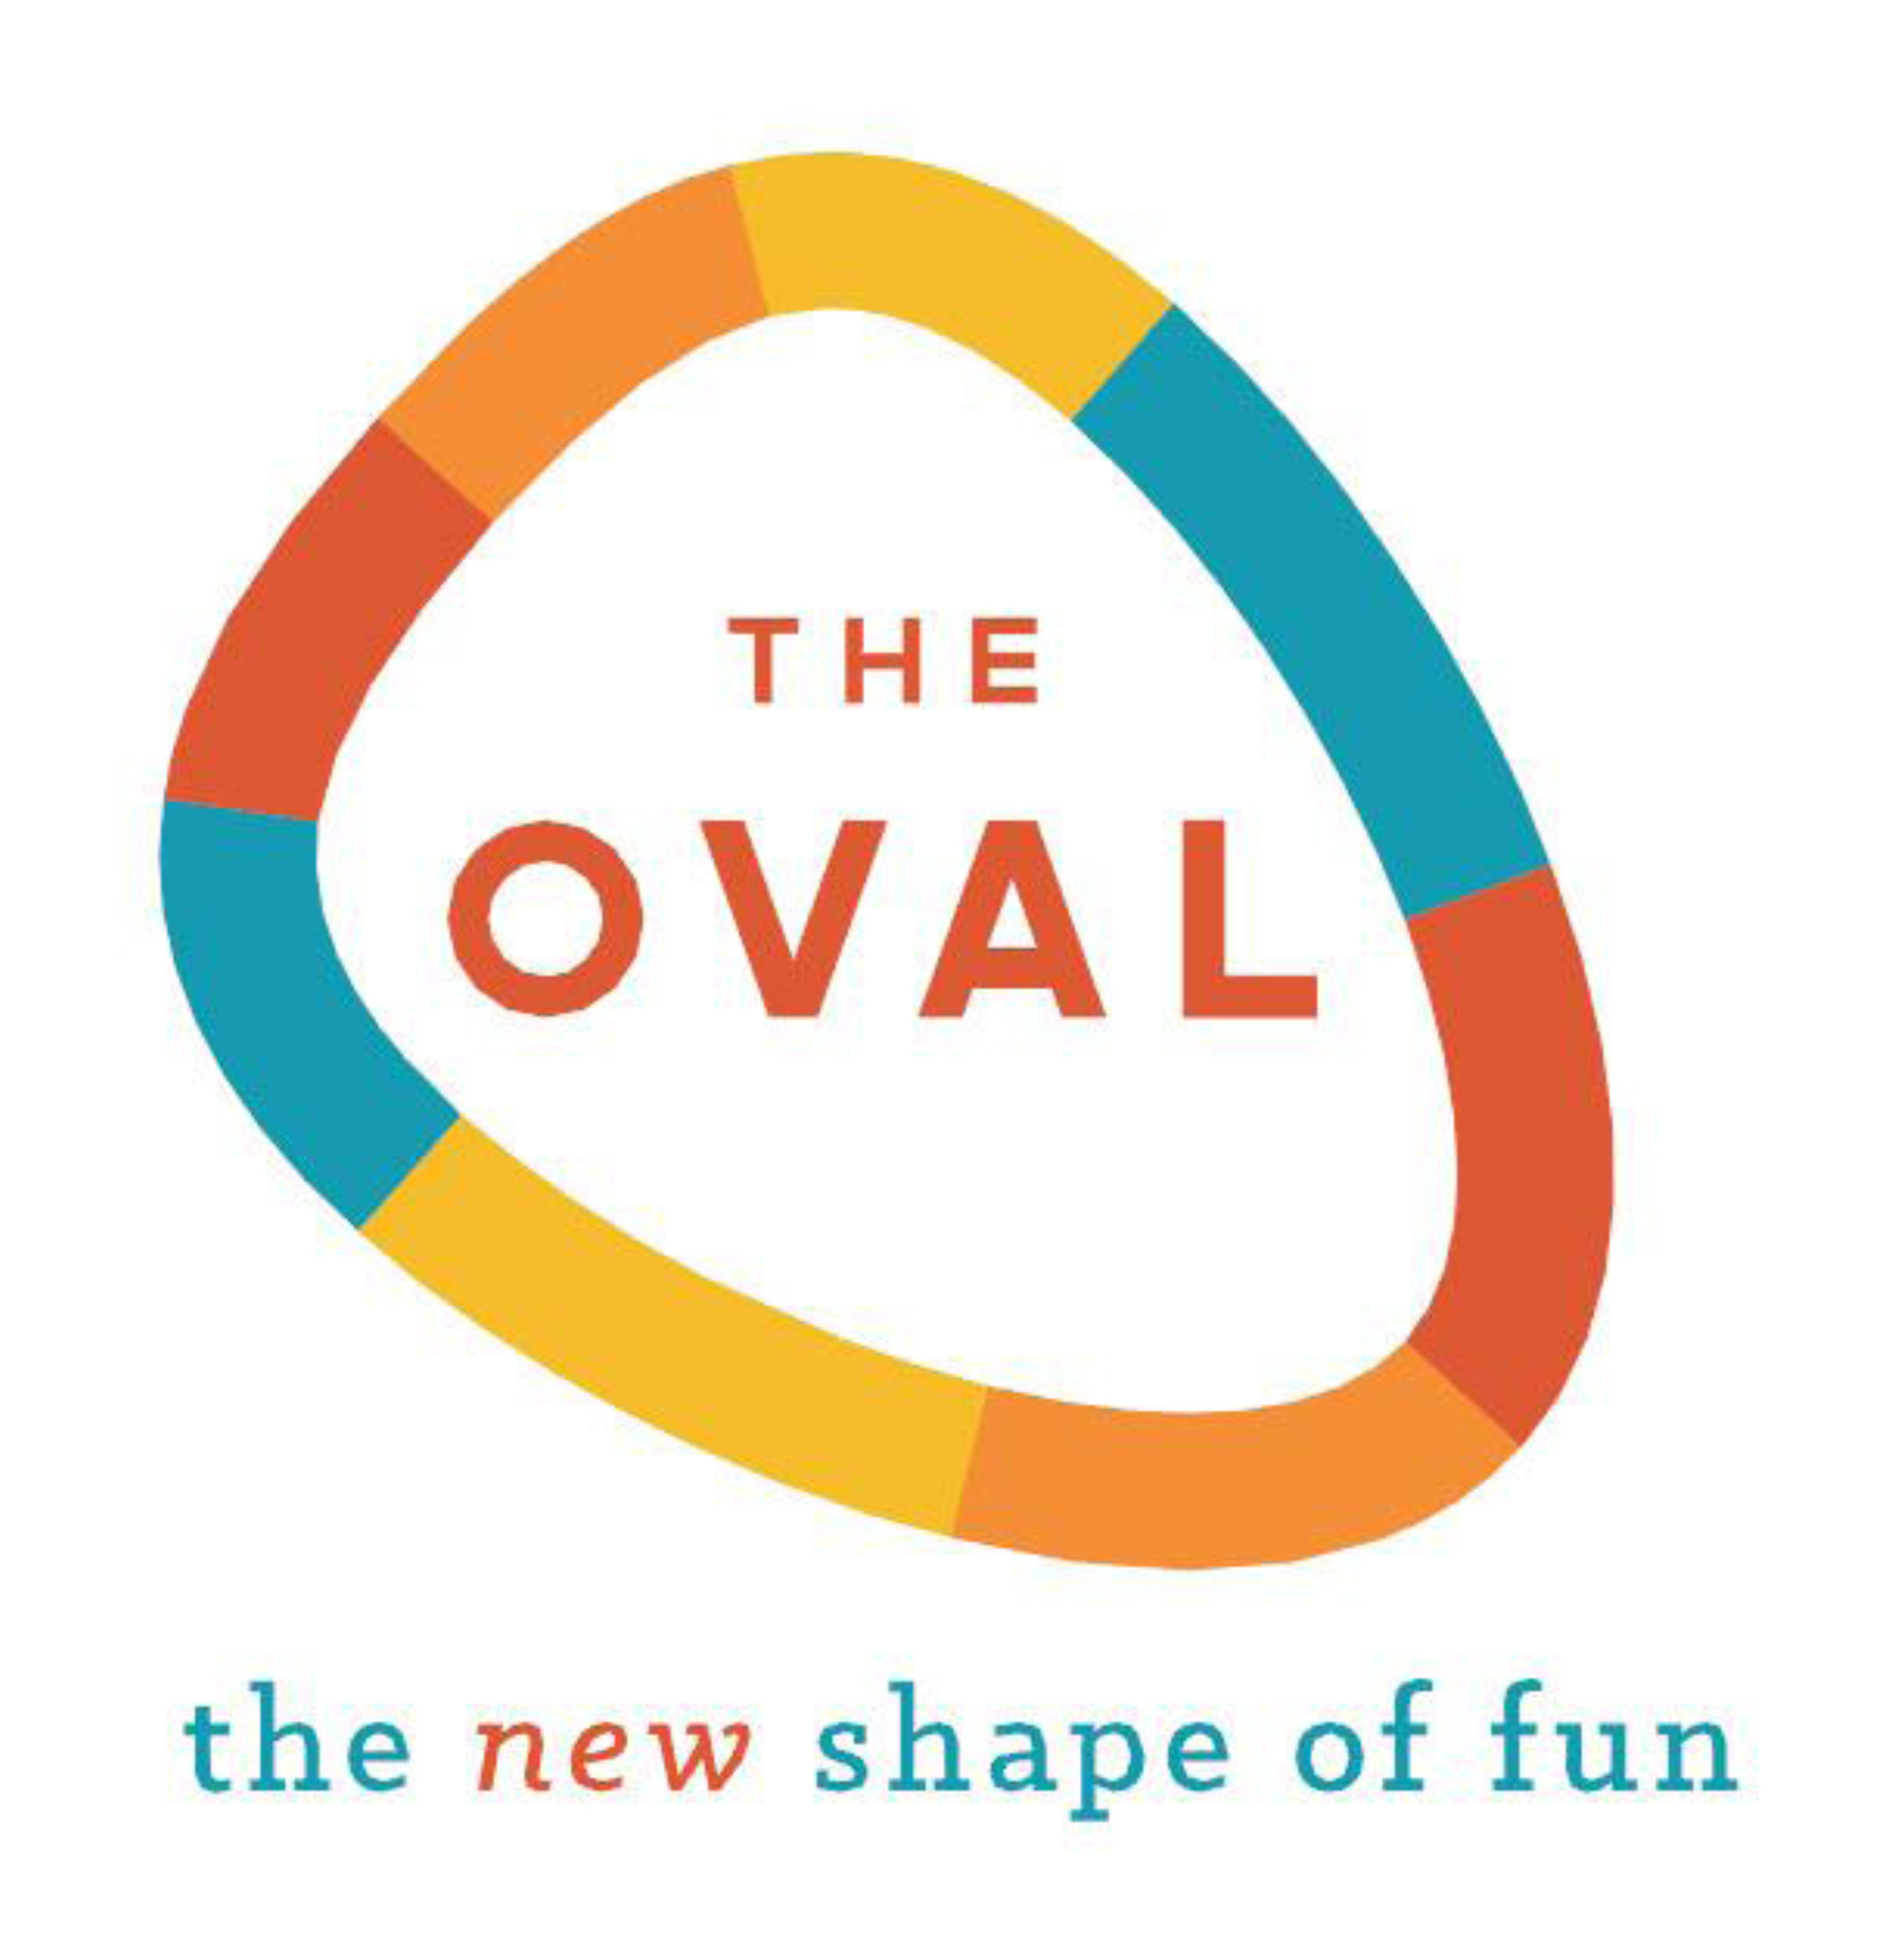 The Oval opens July 17.